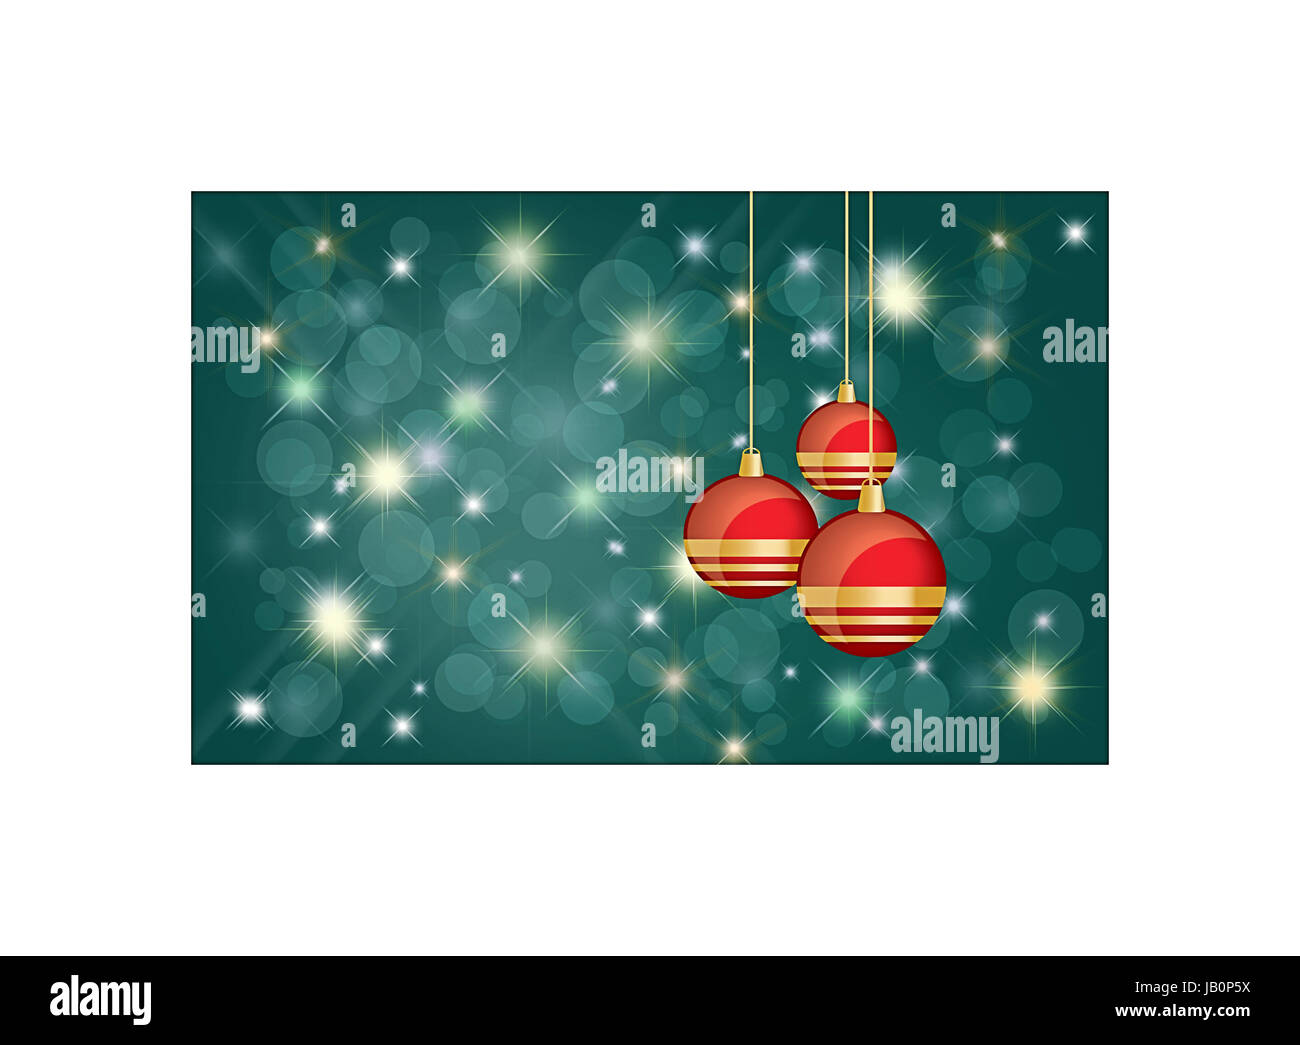 Greetings christmas card background with copyspace for message with shiny red and gold  bauble balls and bright - Stock Image